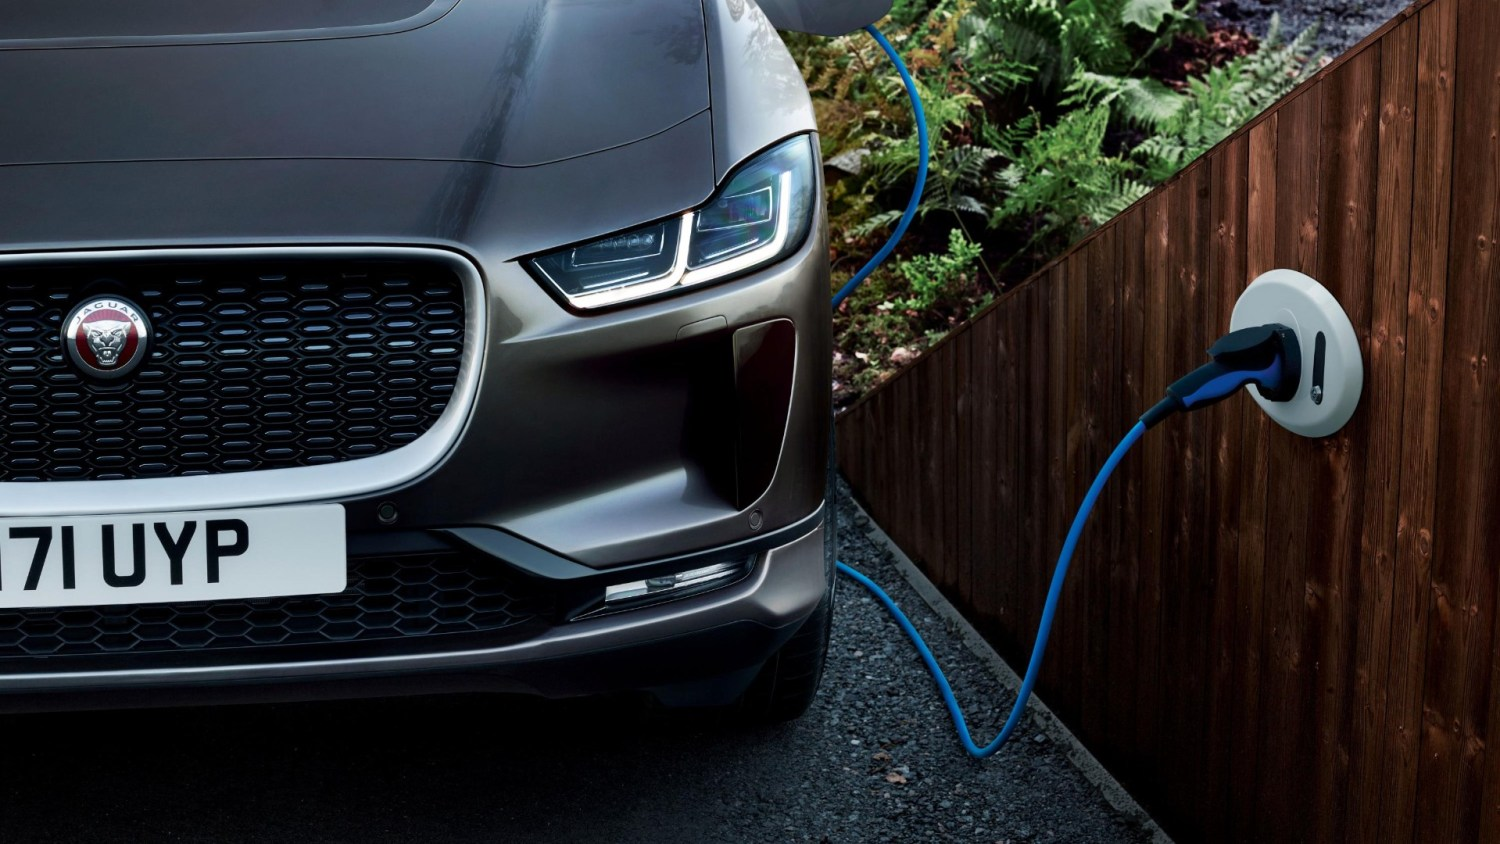 Could electric cars cause blackouts?